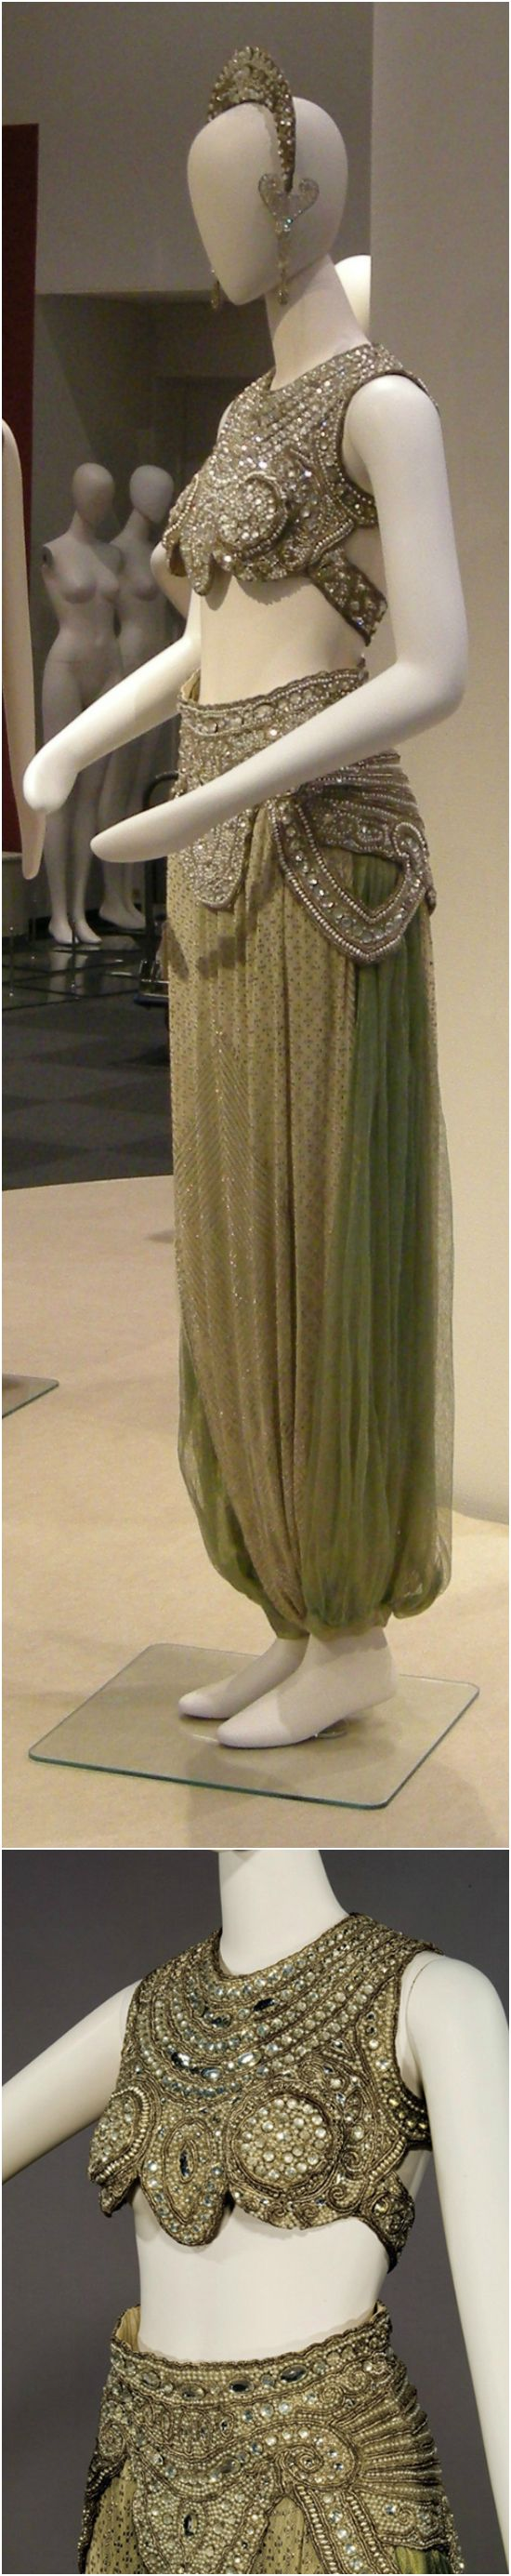 Evening dress by Paul Poiret, 1911-1920, at the Kobe Fashion Museum.